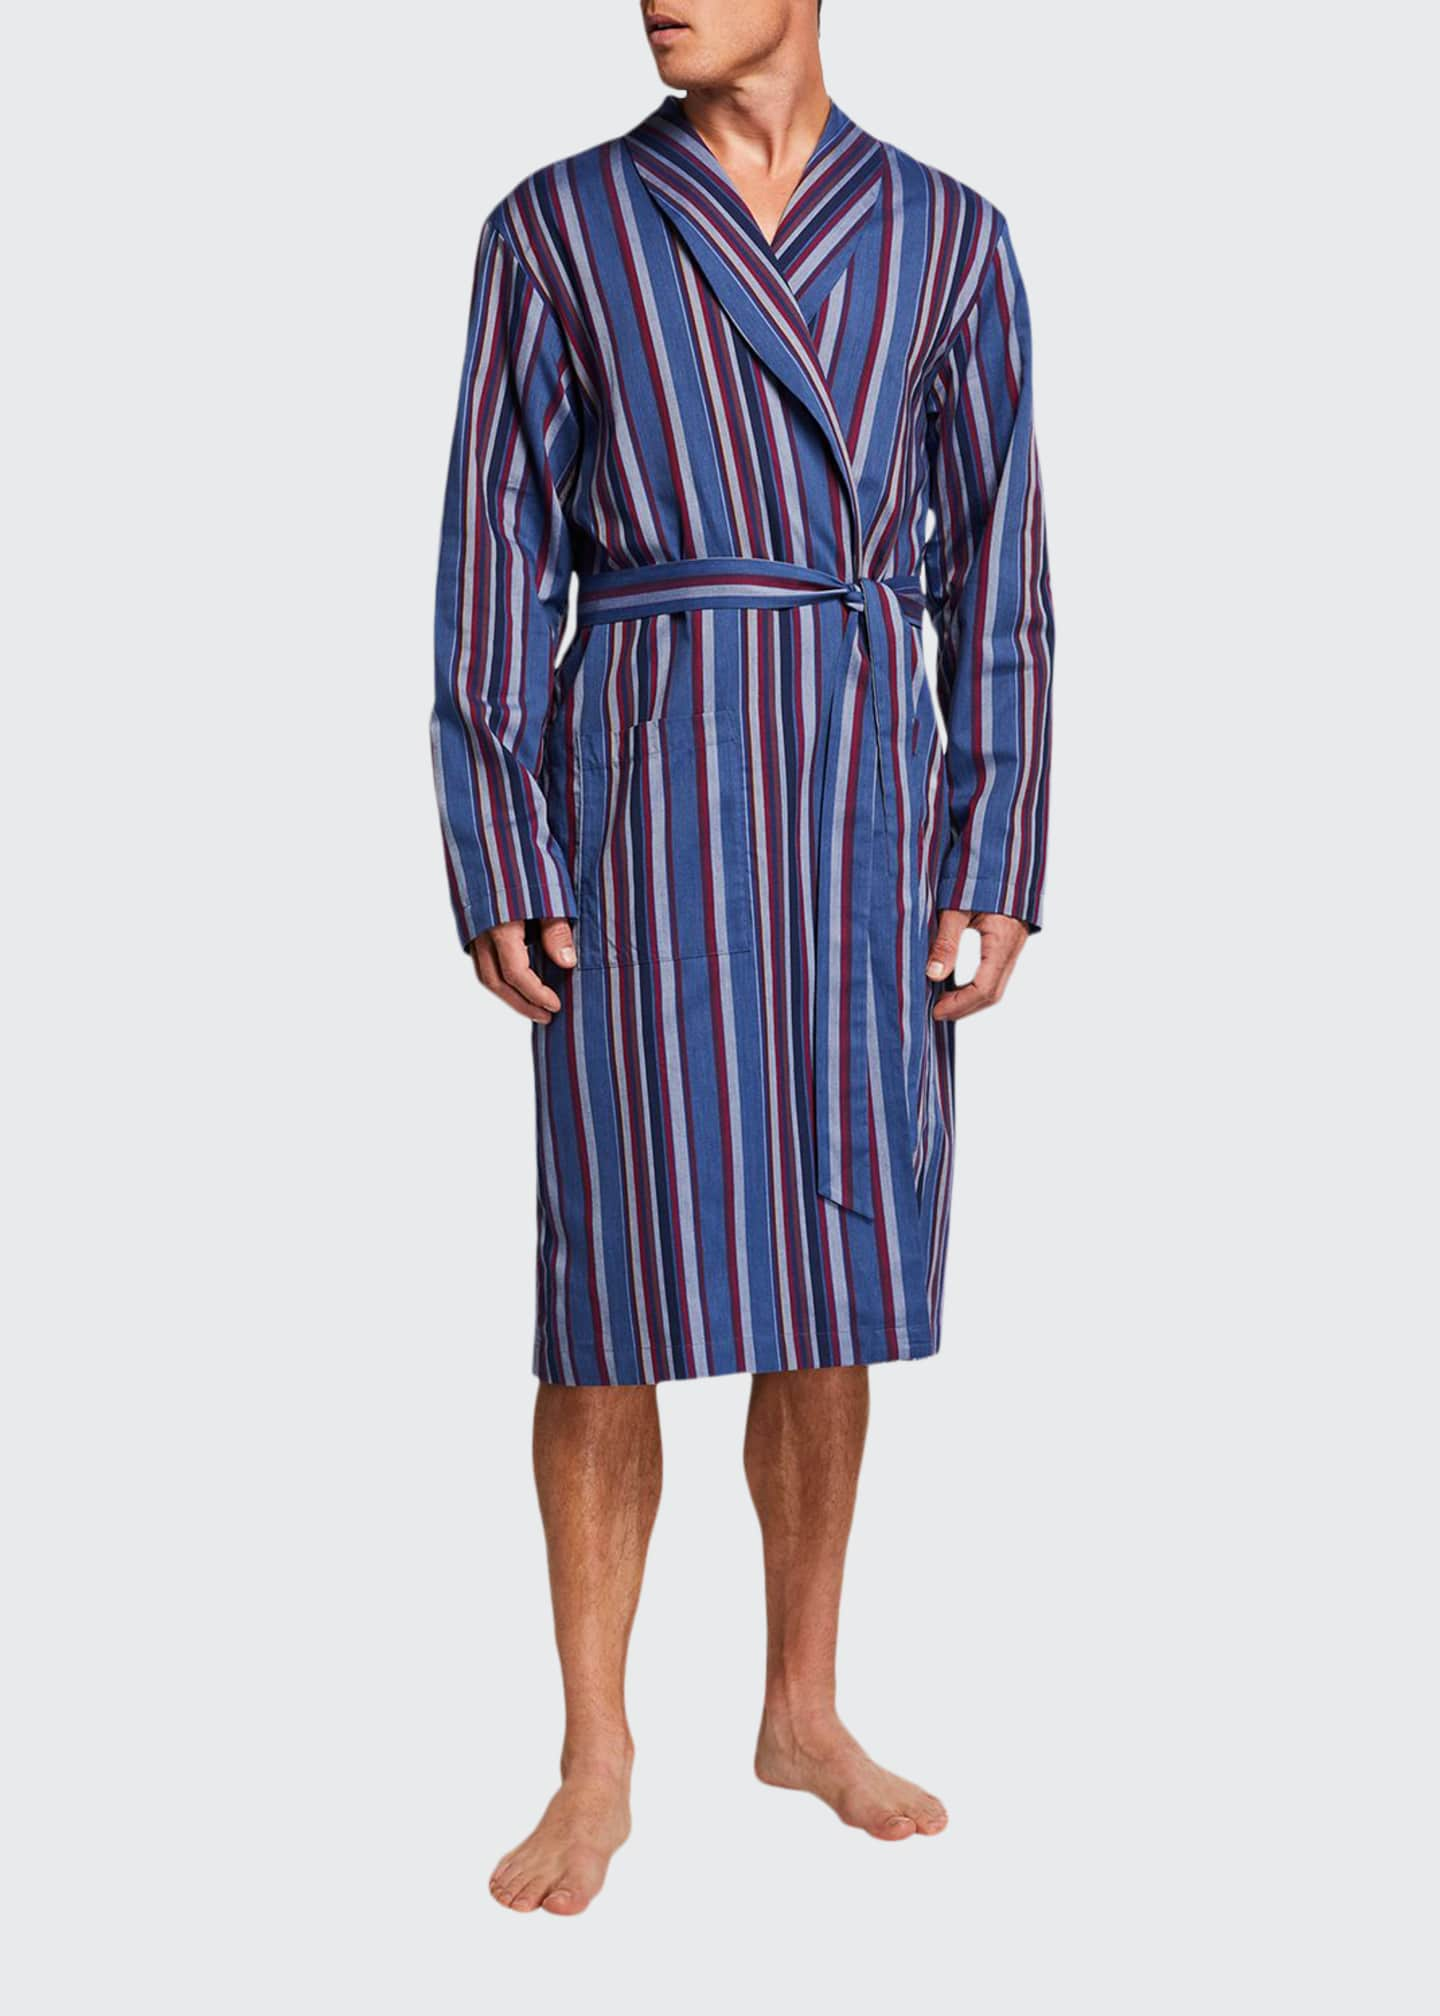 Image 1 of 2: Men's Striped Woven Cotton-Blend Bathrobe